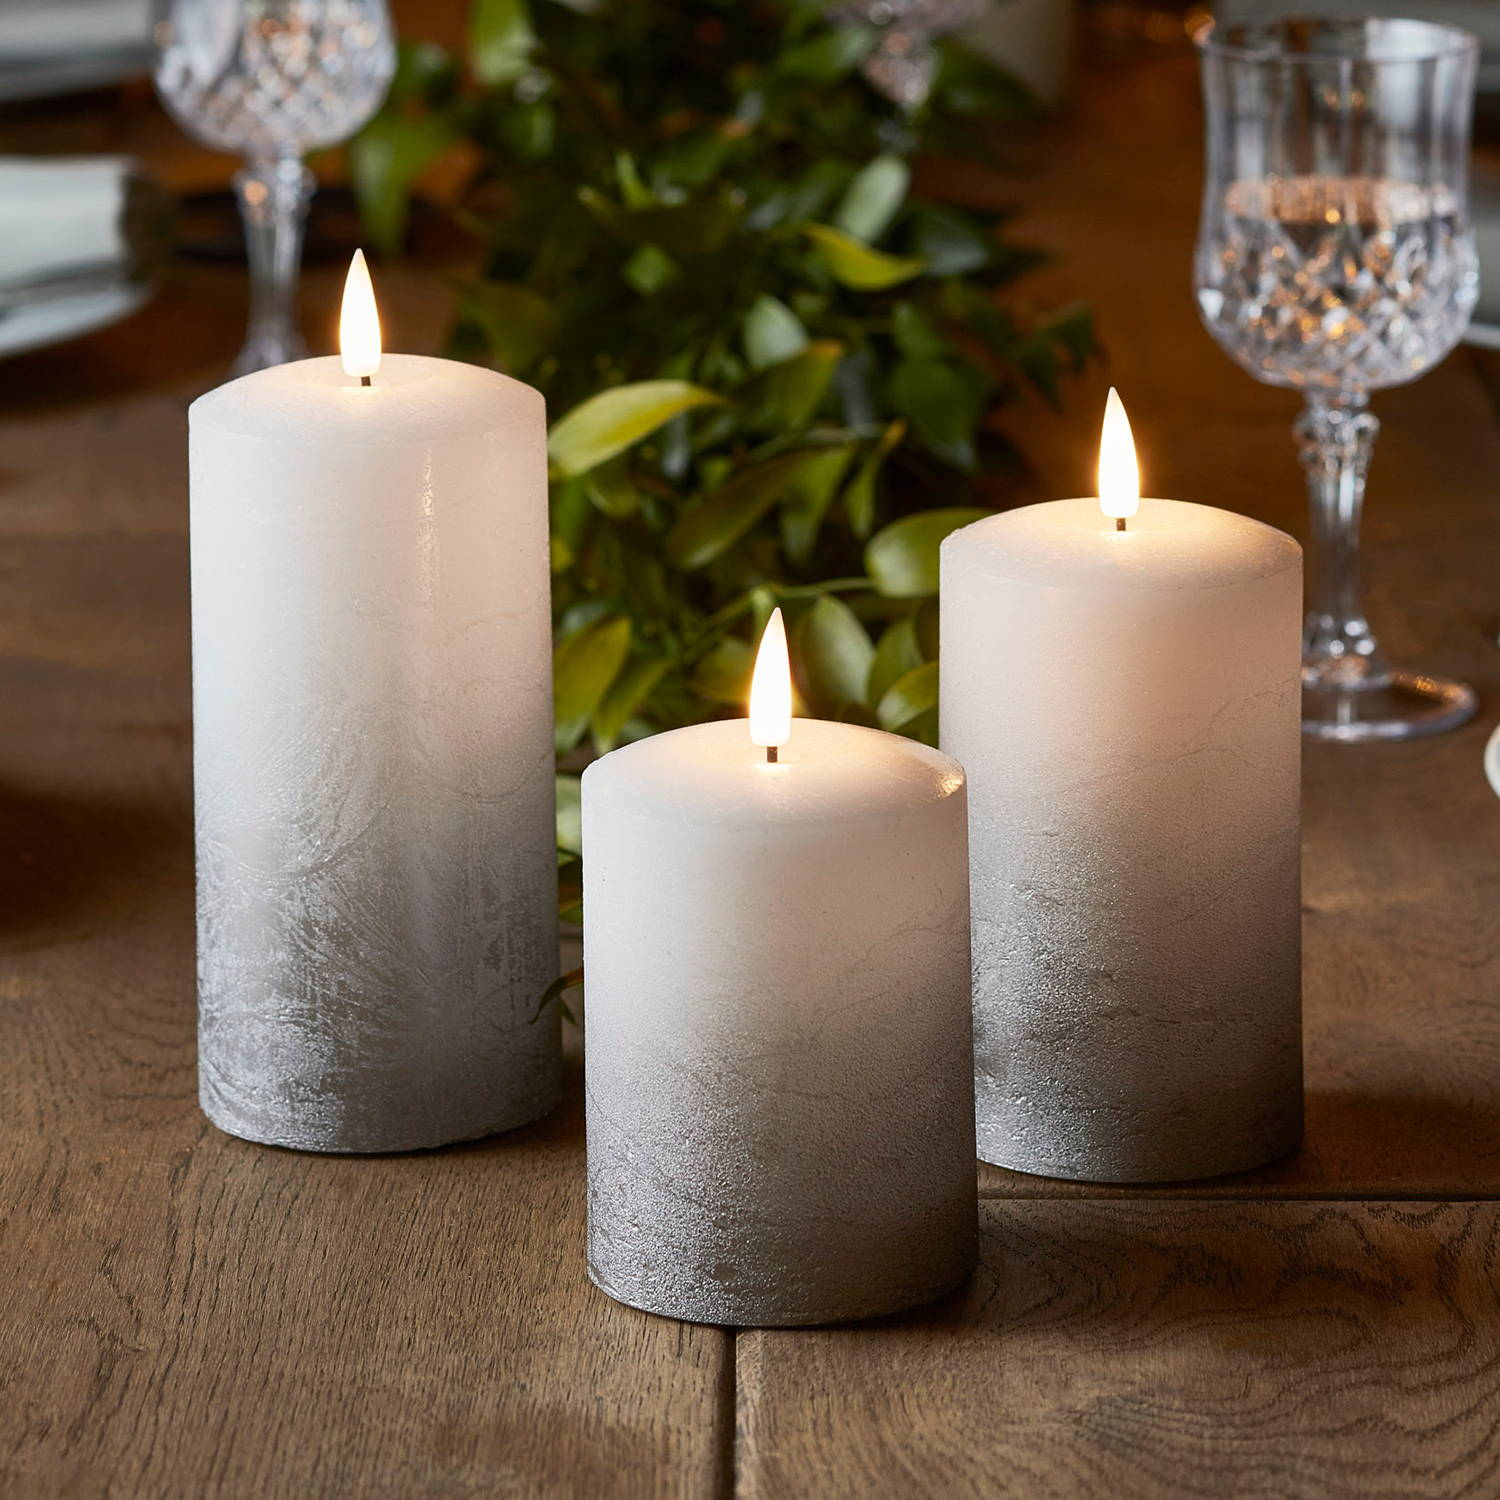 Silver Ombre Christmas Candles on Table